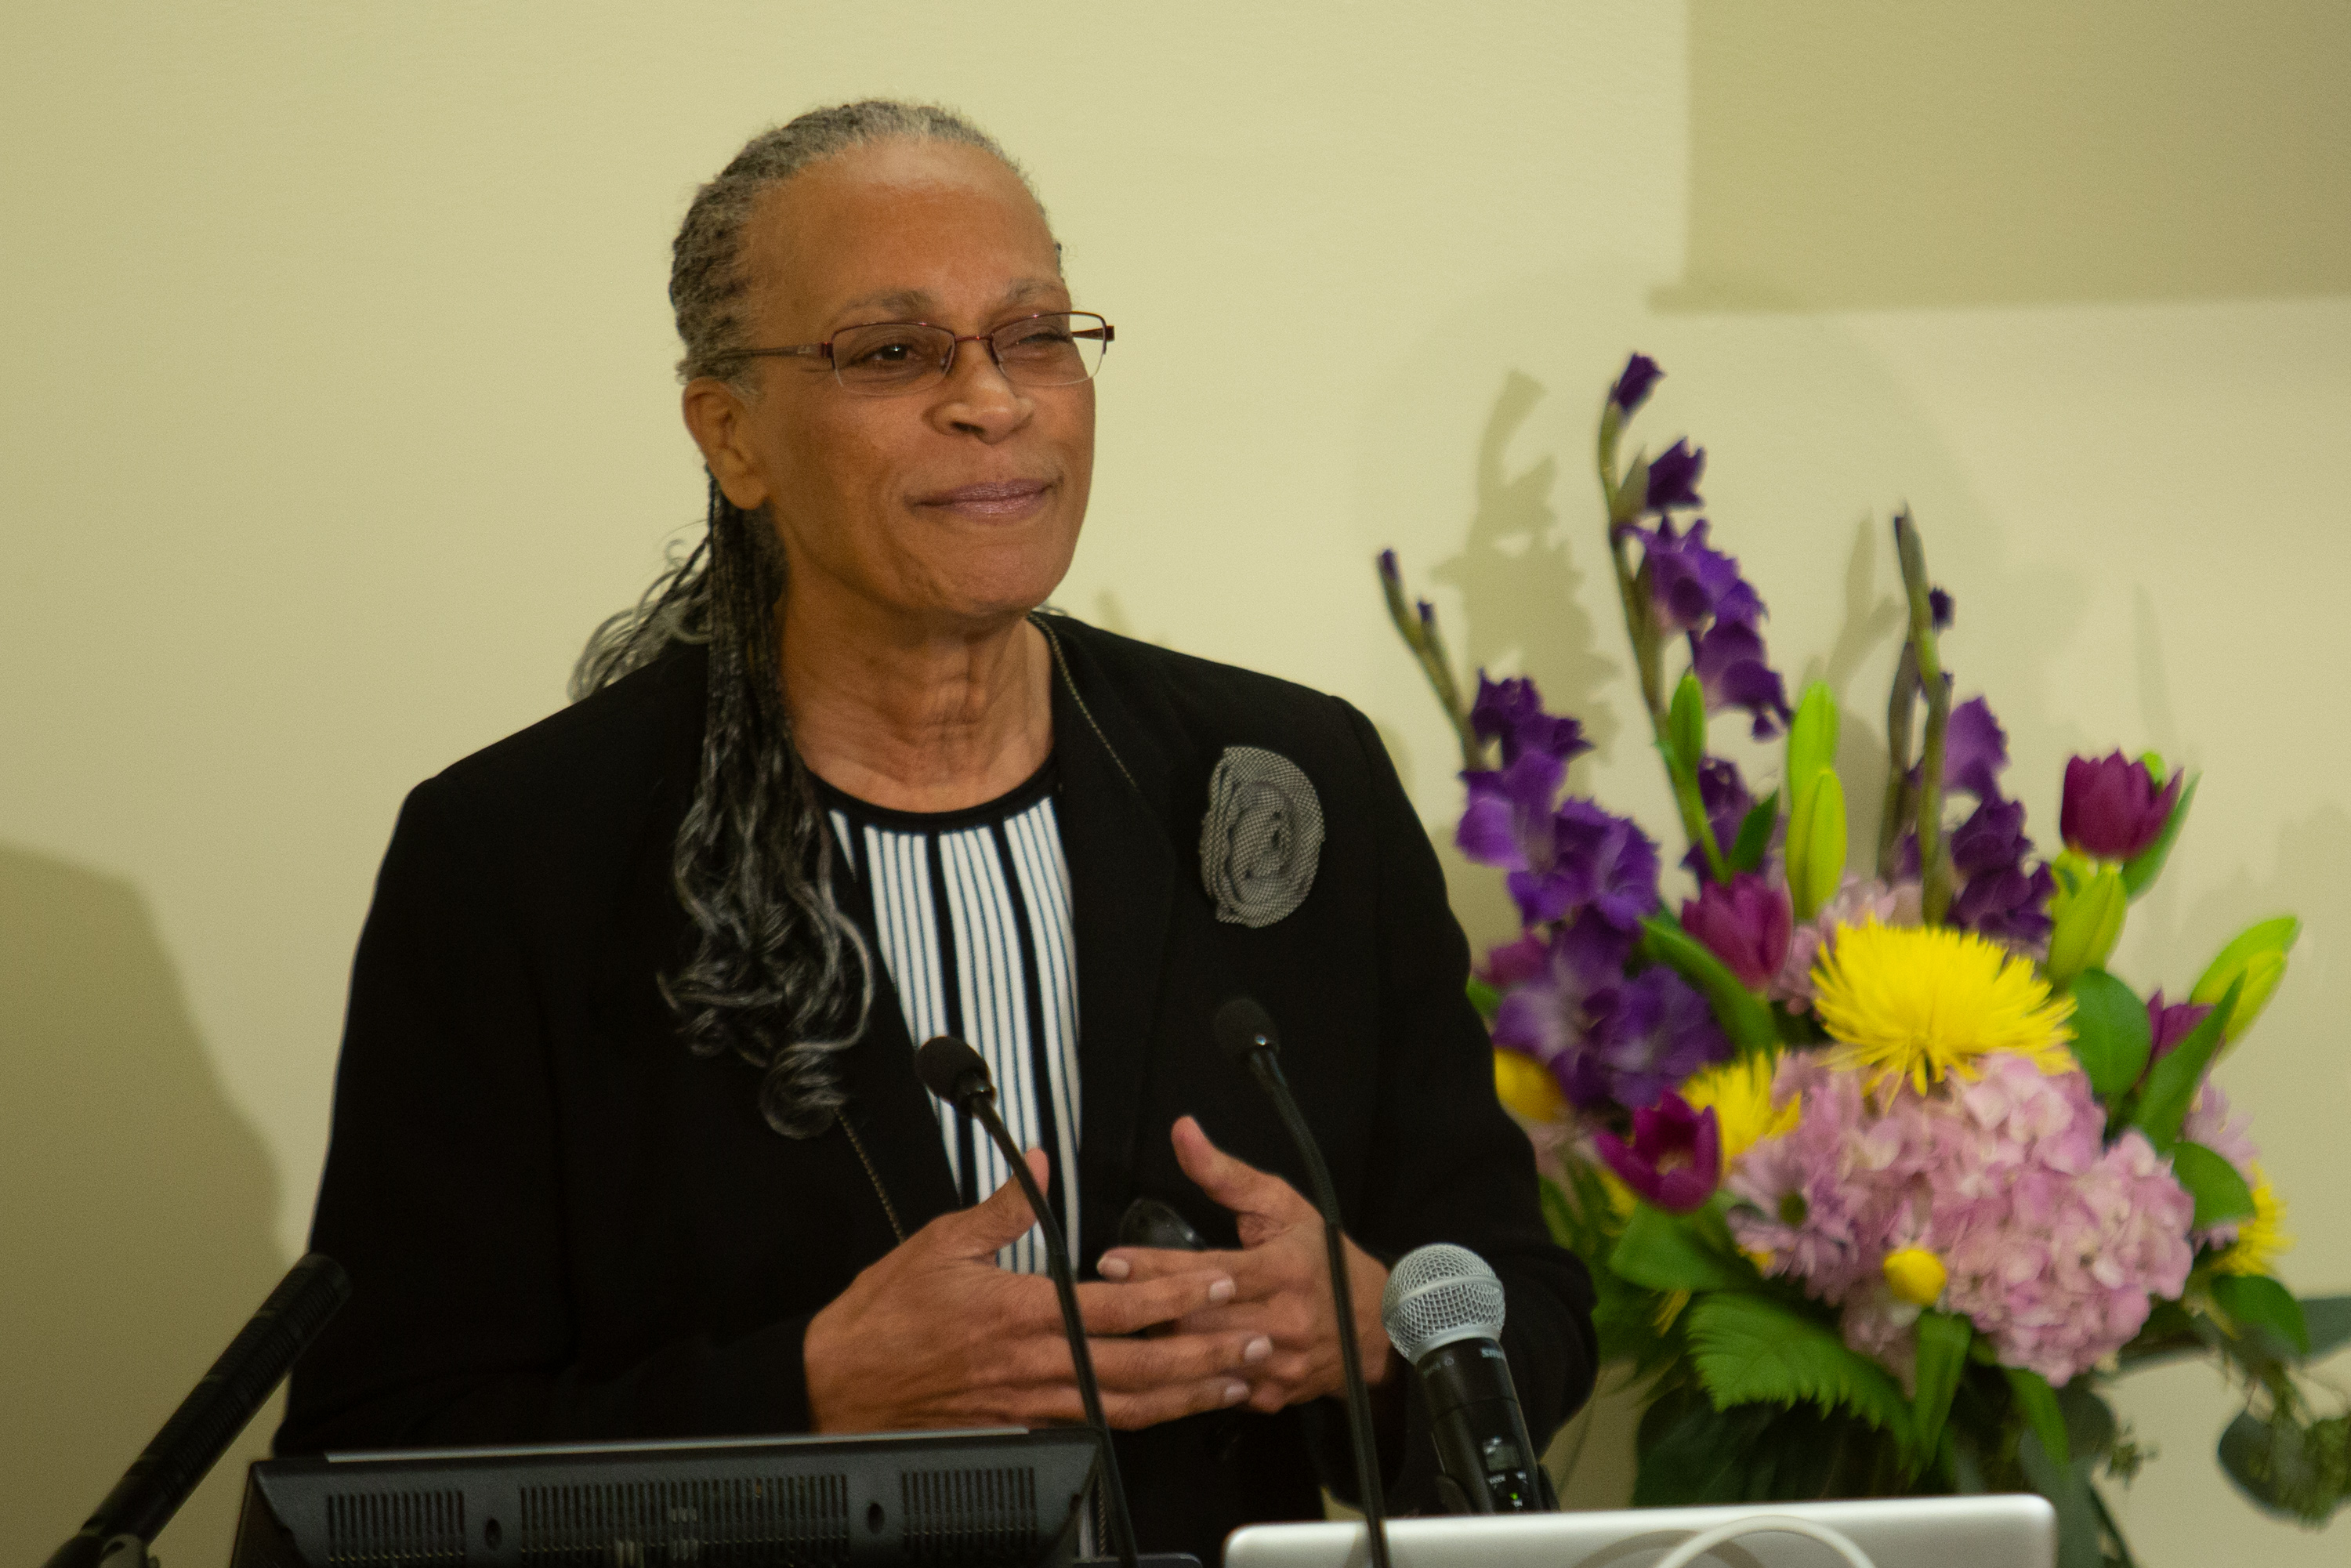 Dr. Arnetha Ball speaks at the podium with a bouquet of flowers in the background.